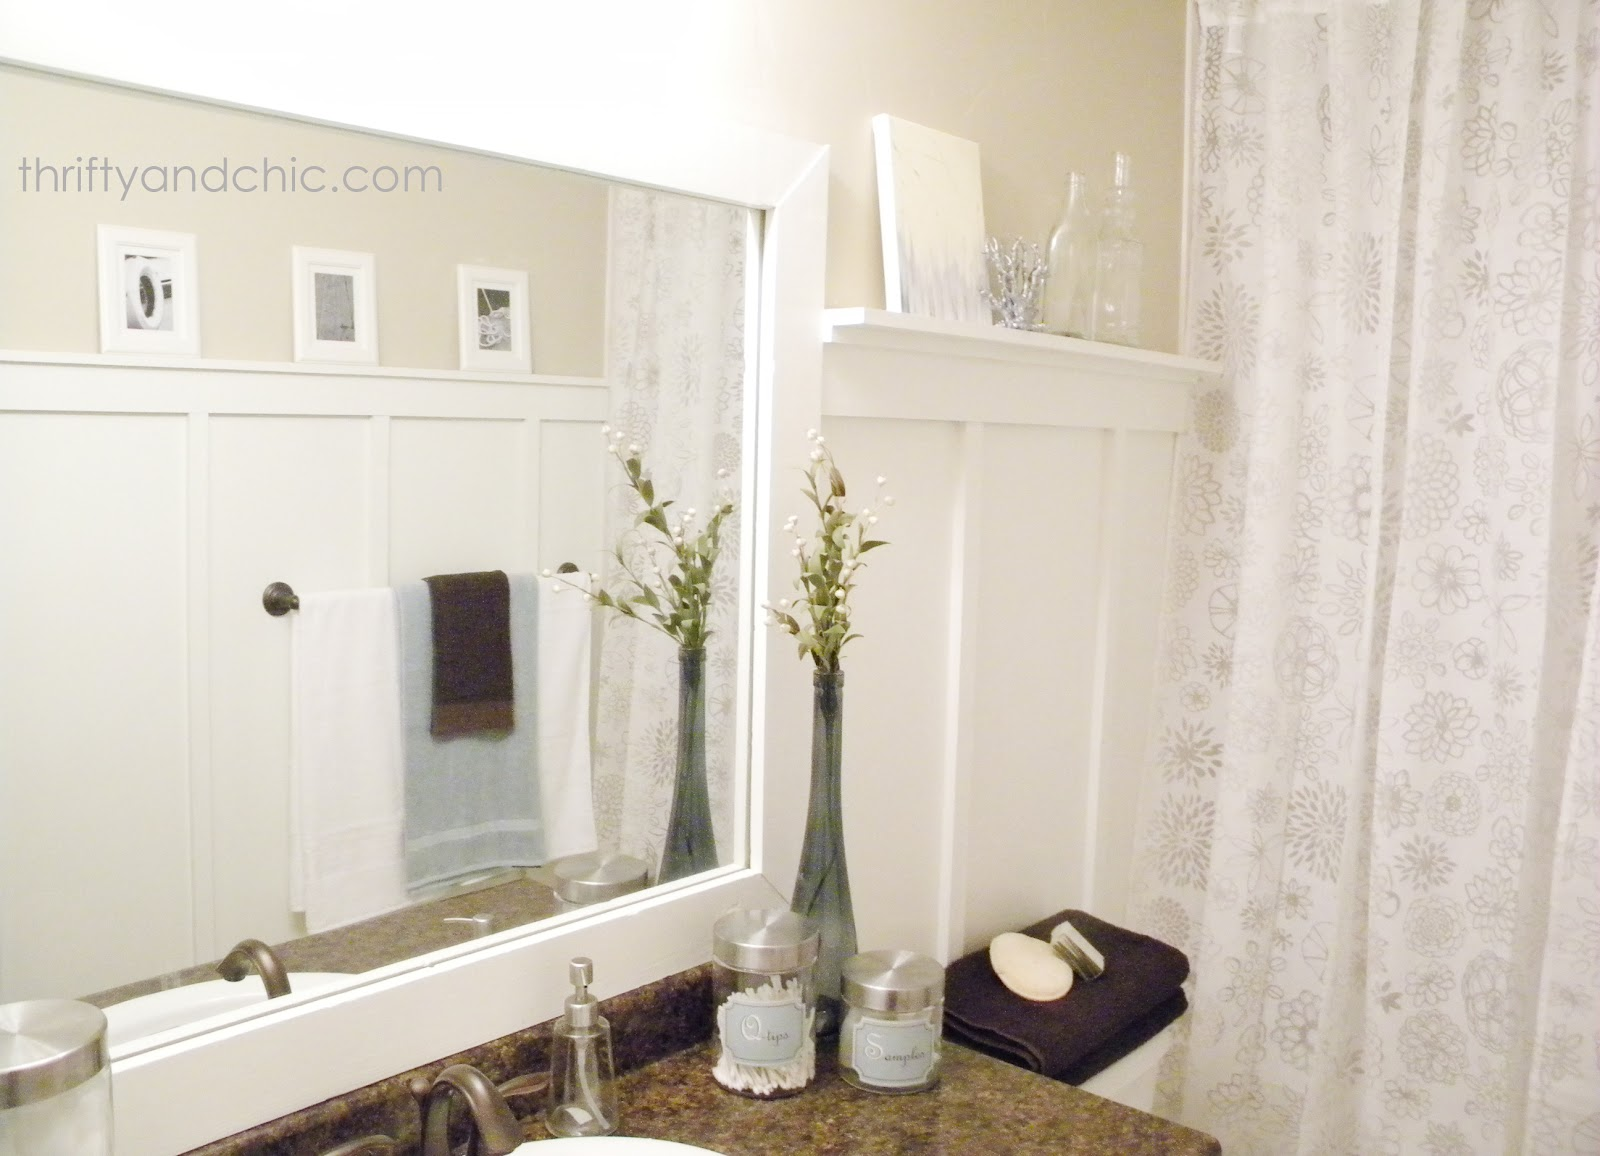 Thrifty and chic diy projects and home decor for Bathroom makeovers